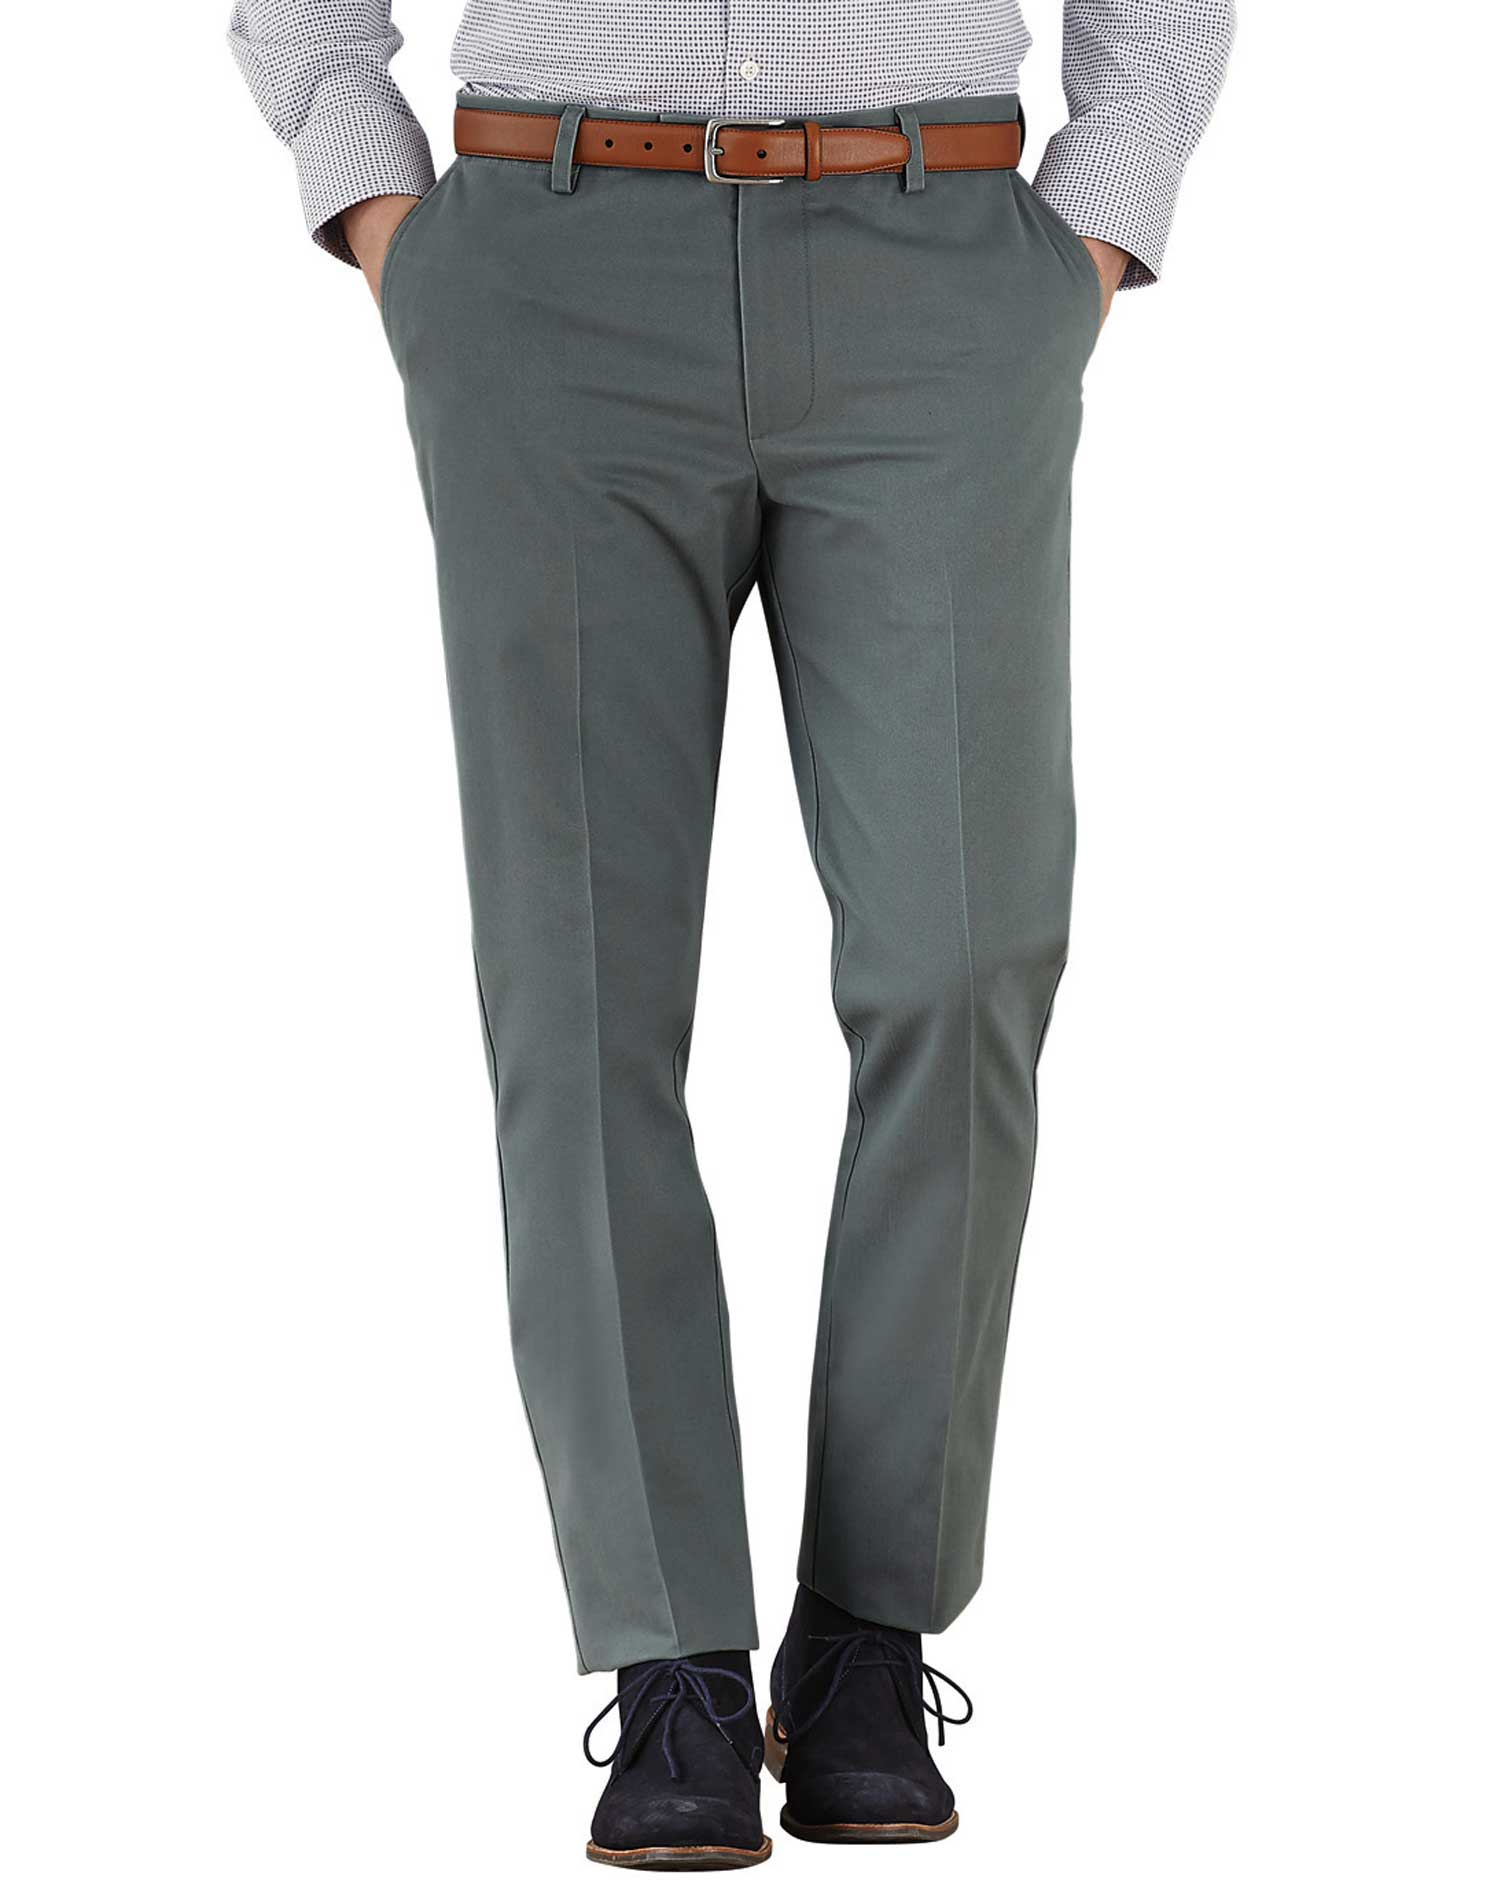 Grey Extra Slim Fit Flat Front Non-Iron Cotton Chino Trousers Size W34 L34 by Charles Tyrwhitt